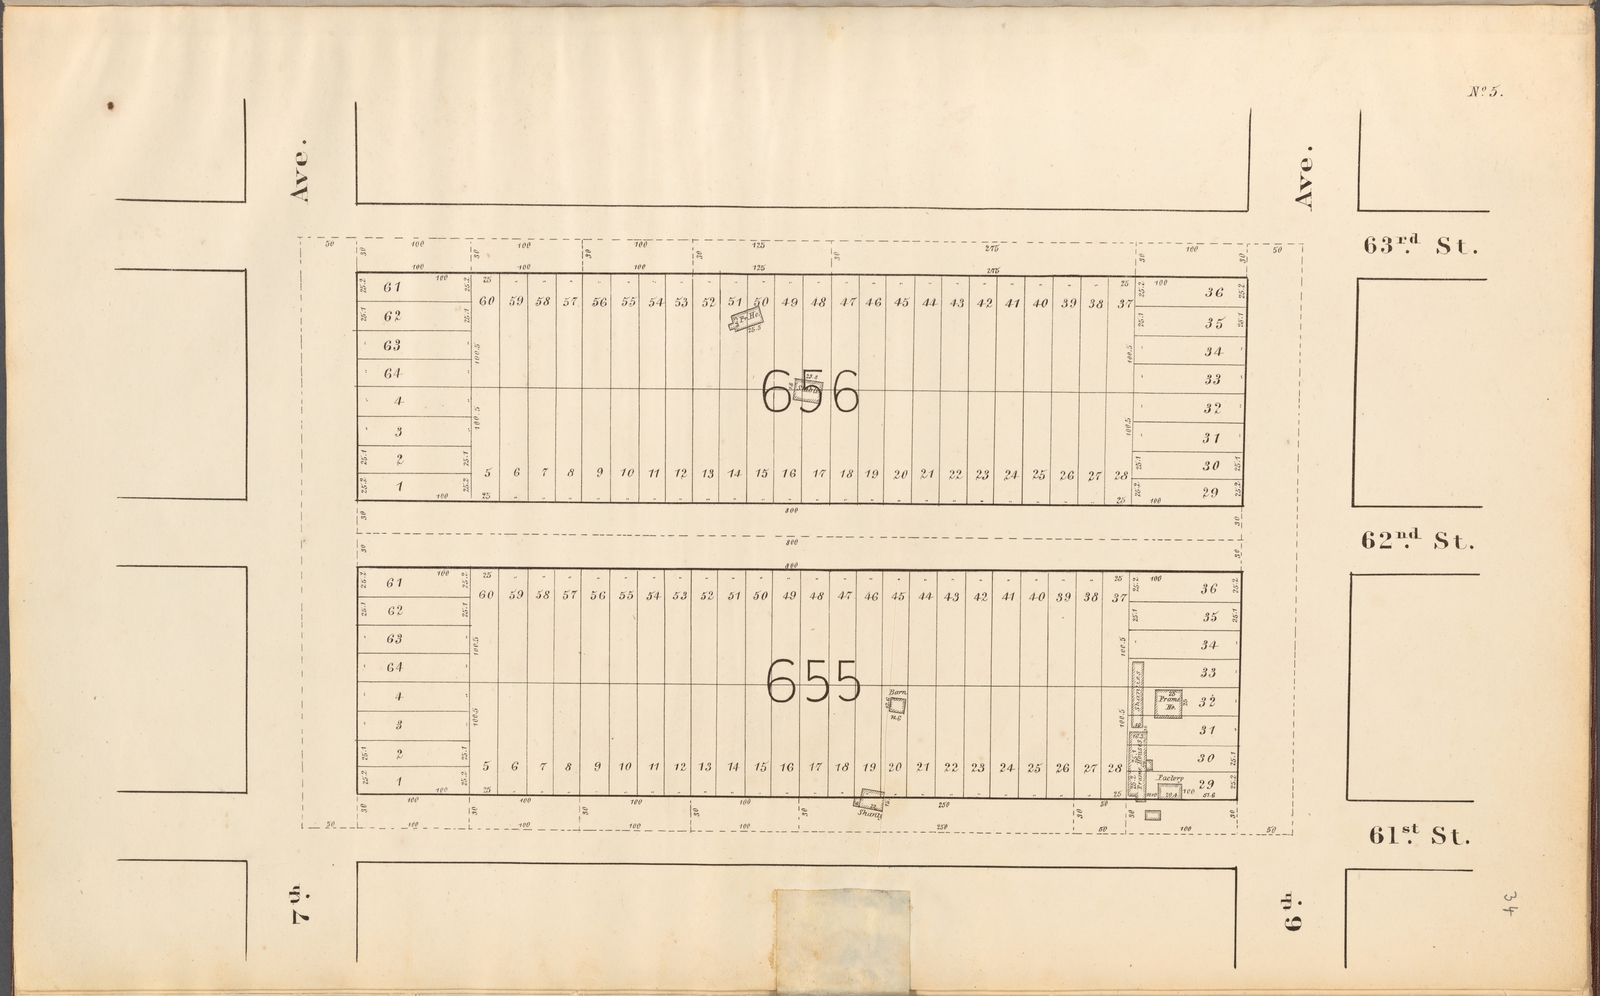 Central Park Planning Map No. 5: Bounded by 63rd Street, 6th Avenue, 61st Street and 7th Avenue